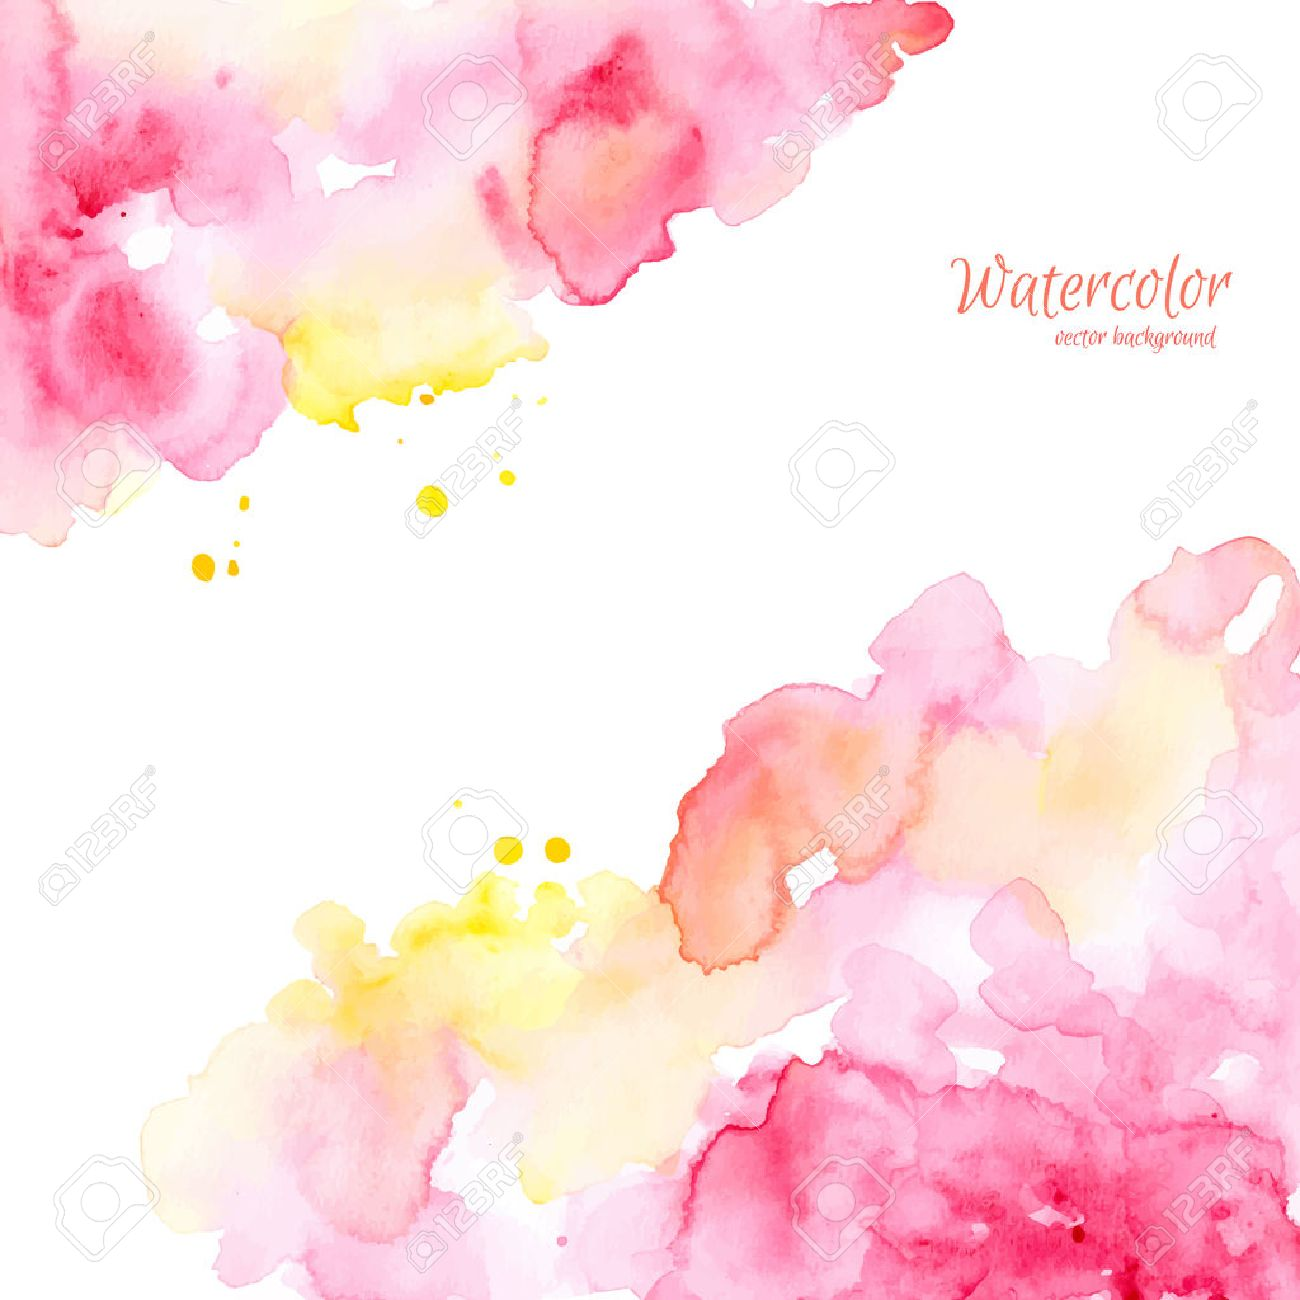 Abstract pink yellow hand drawn watercolor background, vector illustration. Watercolor composition for scrapbook elements. Watercolor shapes on white background. - 42939043